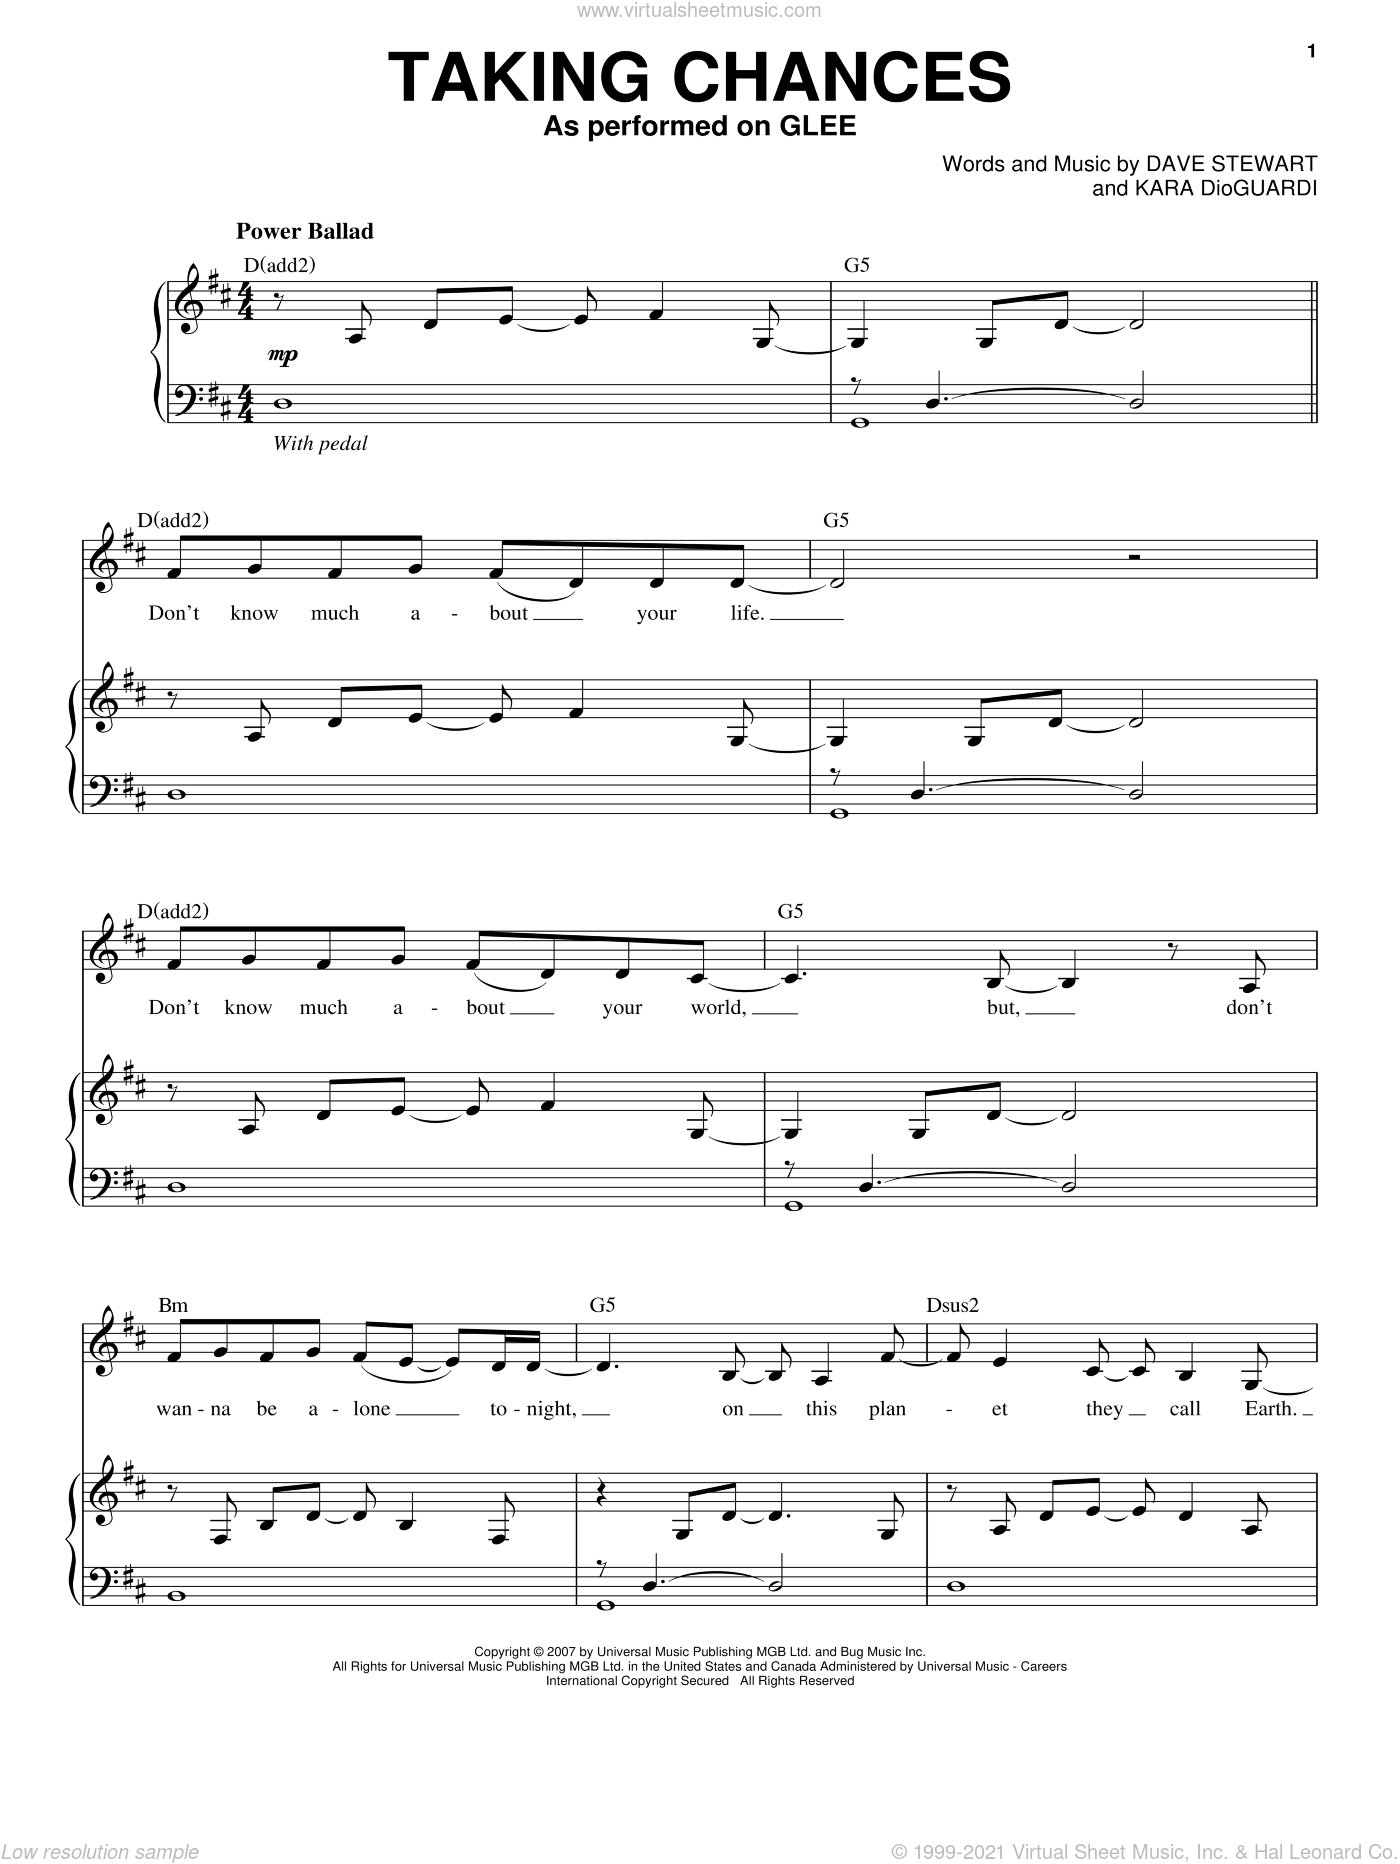 Taking Chances sheet music for voice and piano by Dave Stewart